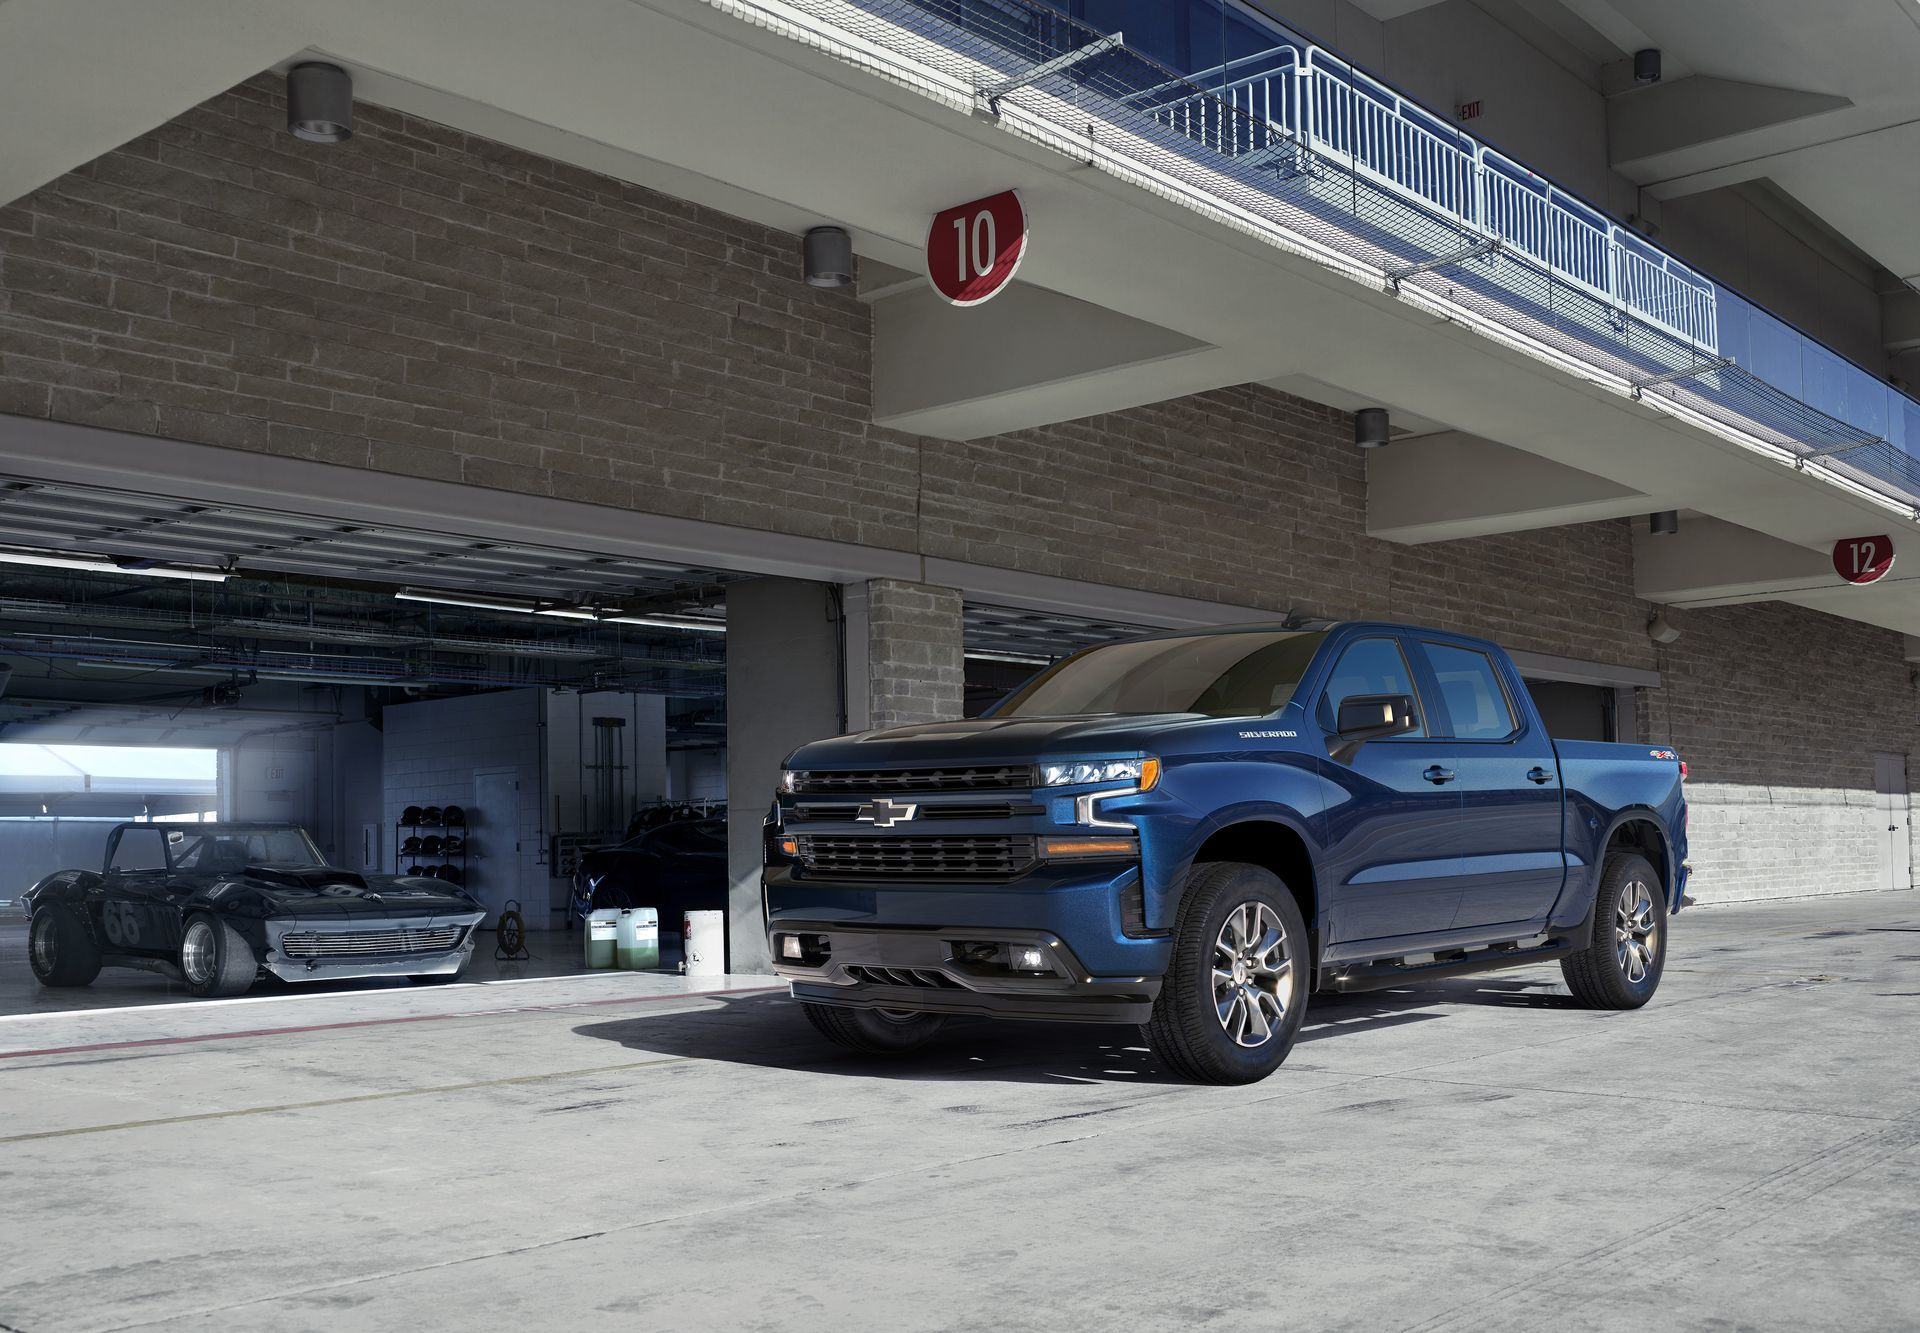 The All New 2019 Silverado Rst (new Trim For 2019) Brings A Stre